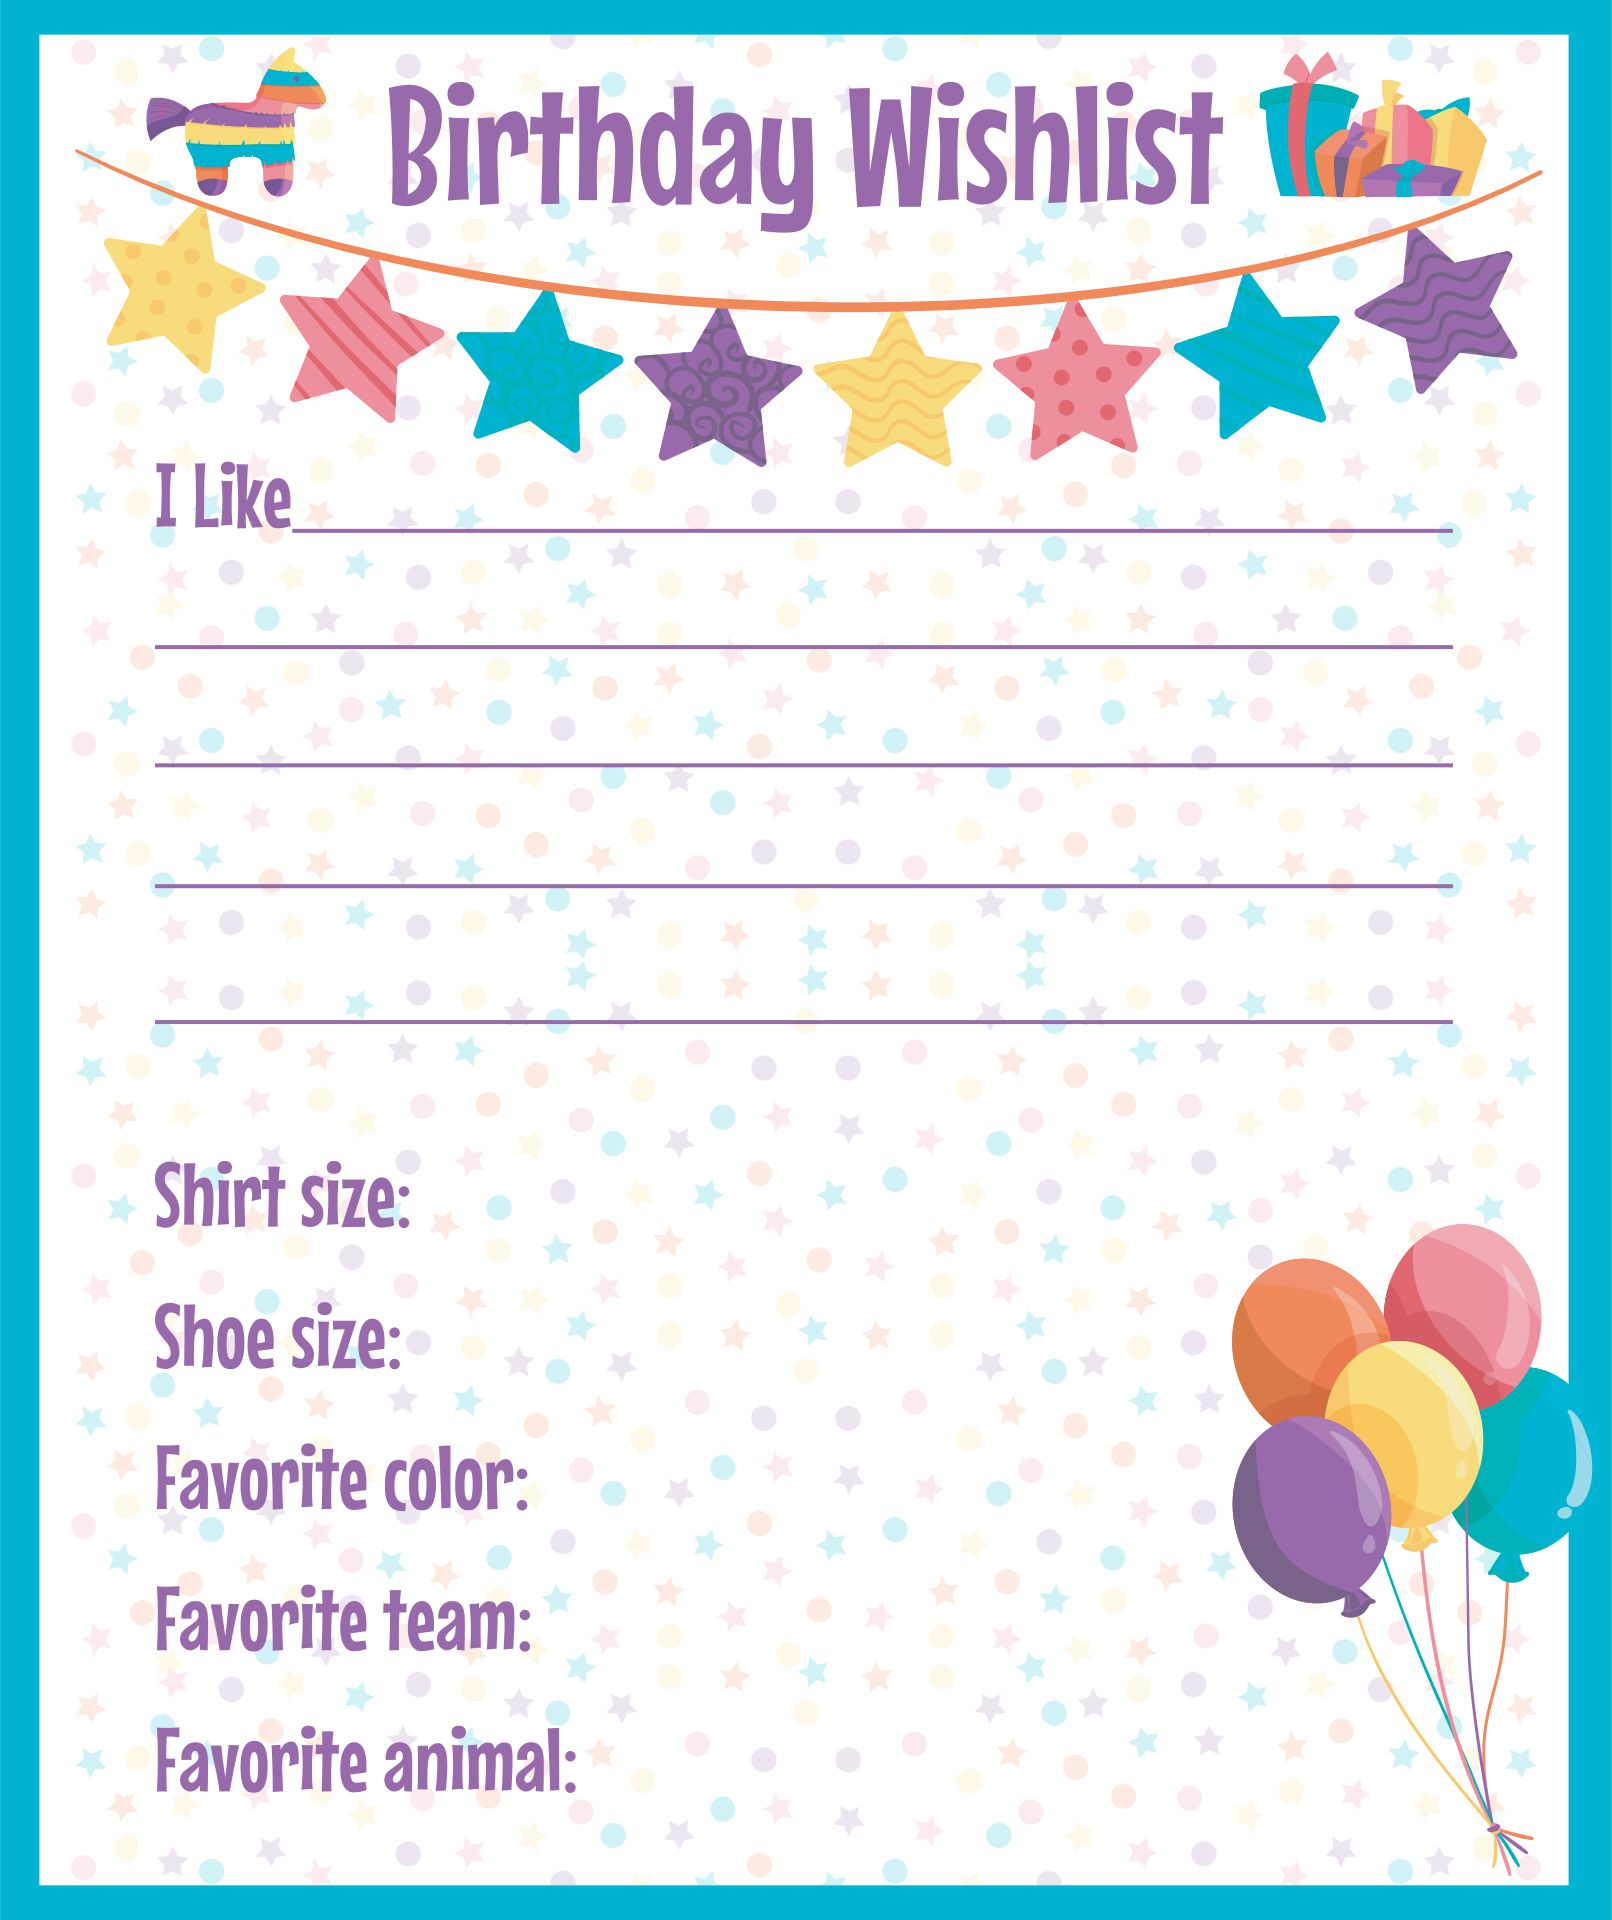 Birthday Wish List Printable